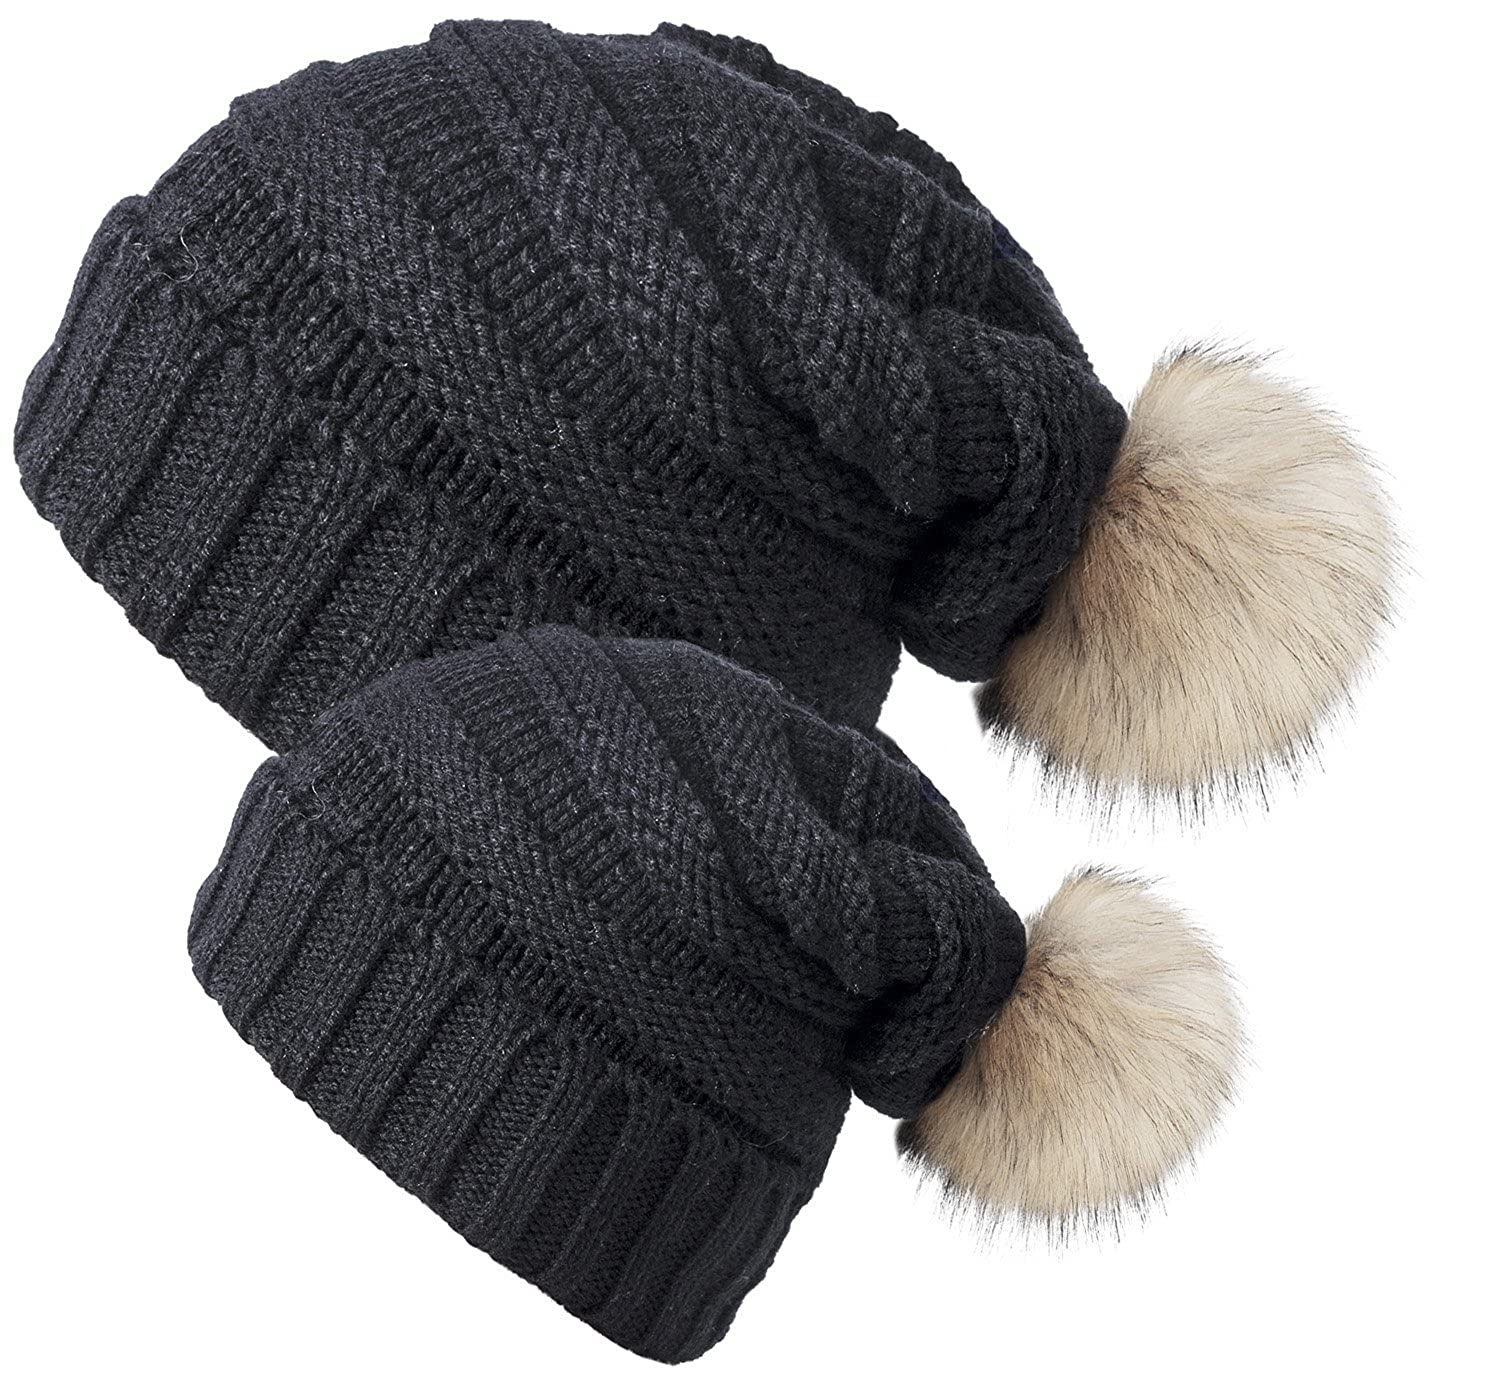 6abd0e88c9aac Top 10 wholesale Fashion Knit Hats - Chinabrands.com